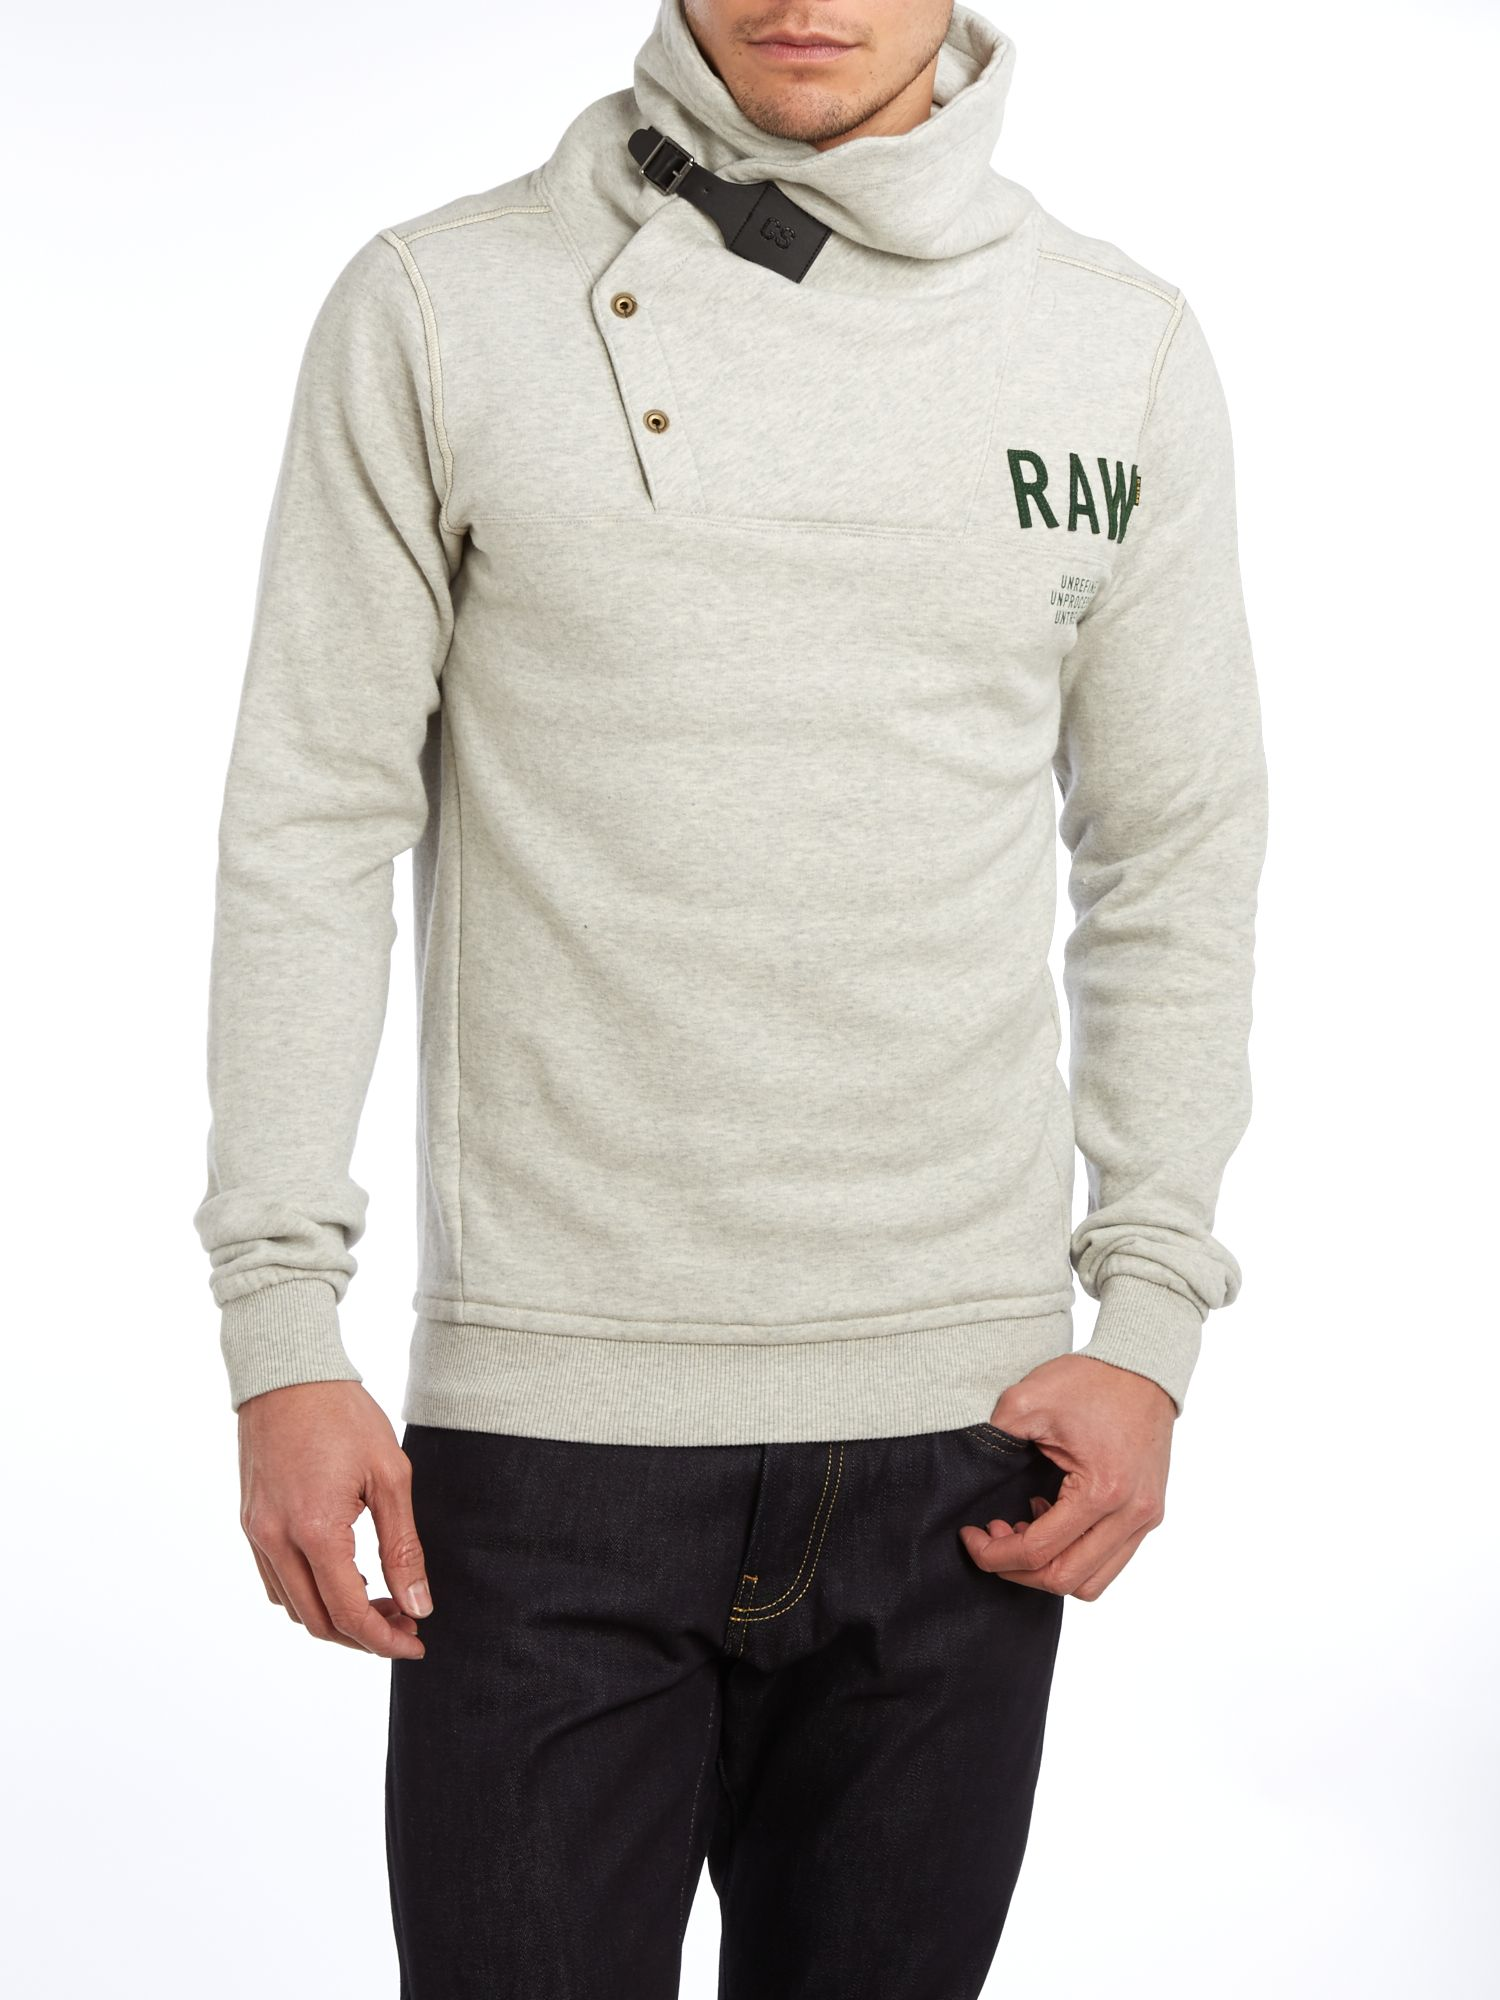 Roll neck button up sweatshirt